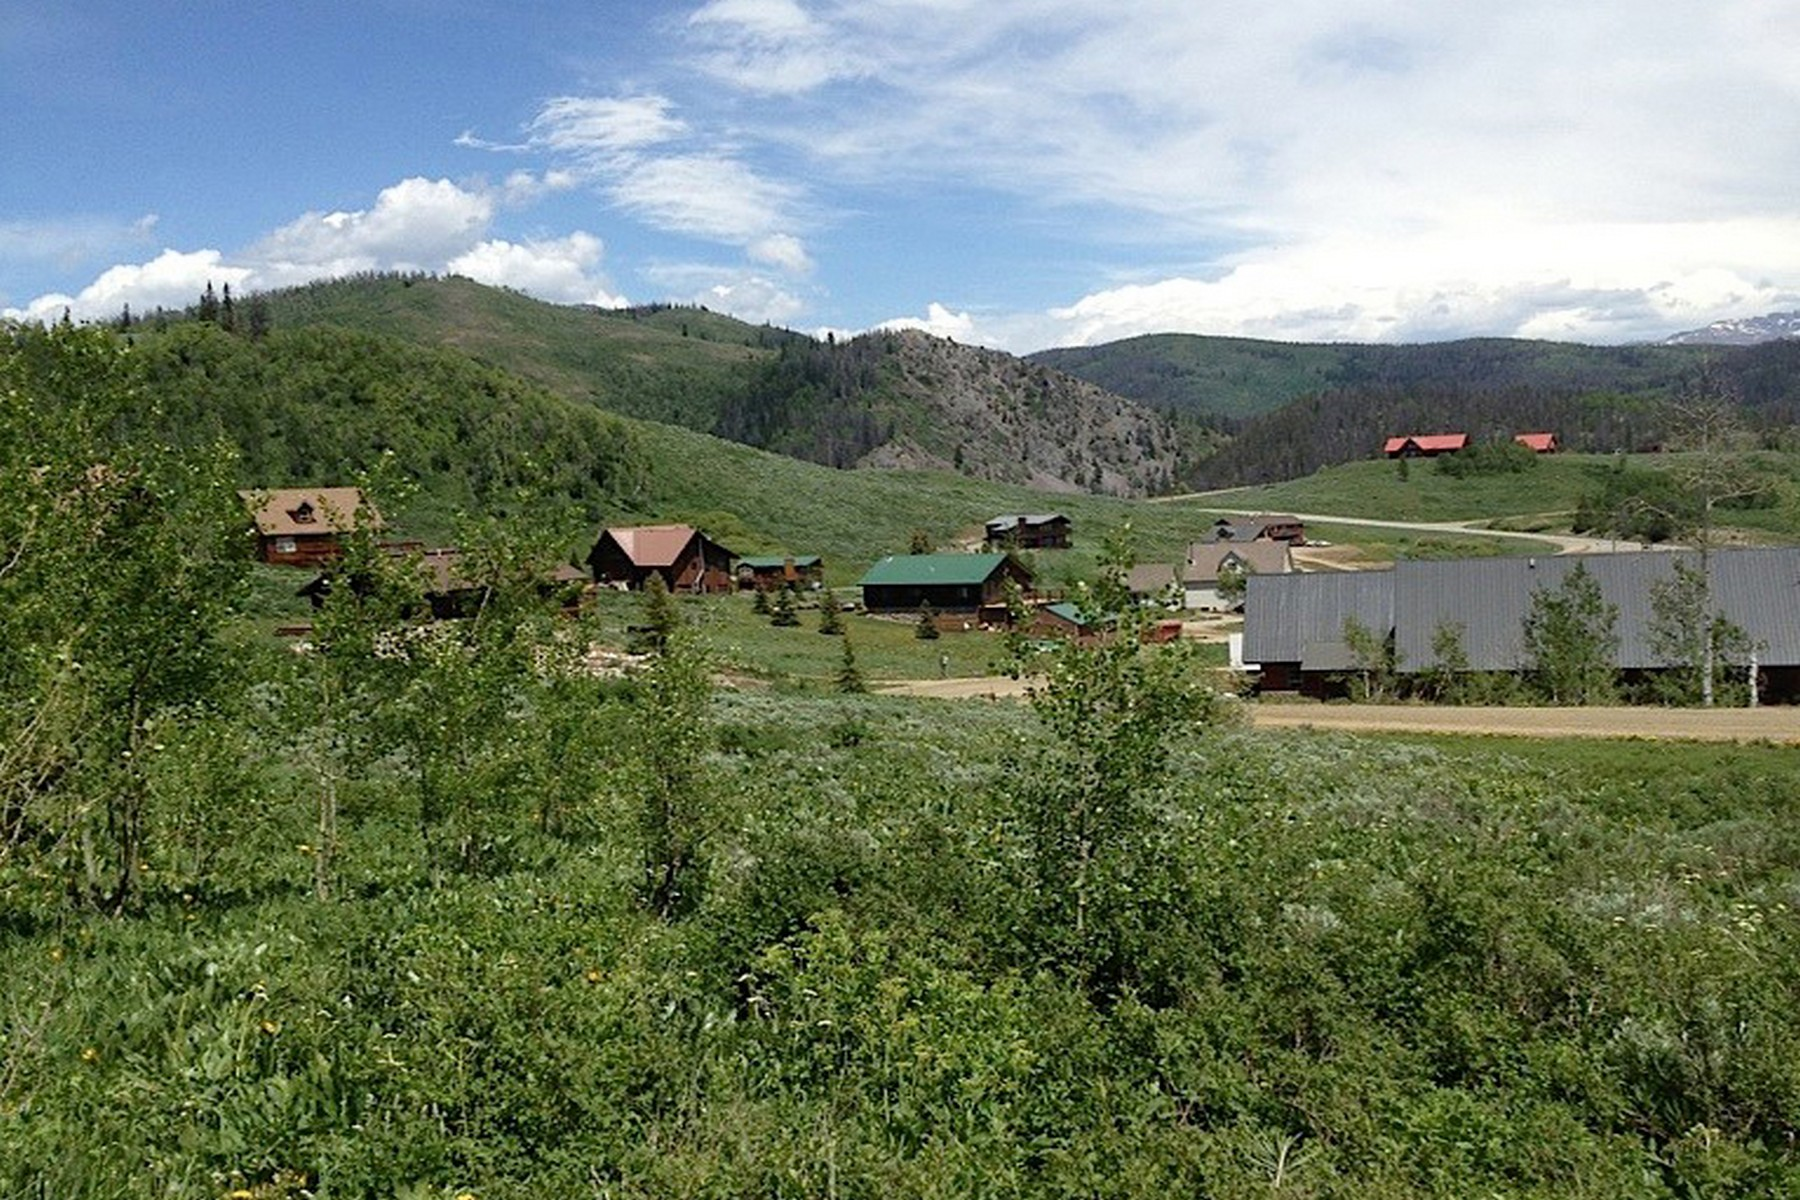 Land for Sale at Willow Creek Pass Village 57570 Longfellow Way Clark, Colorado 80428 United States